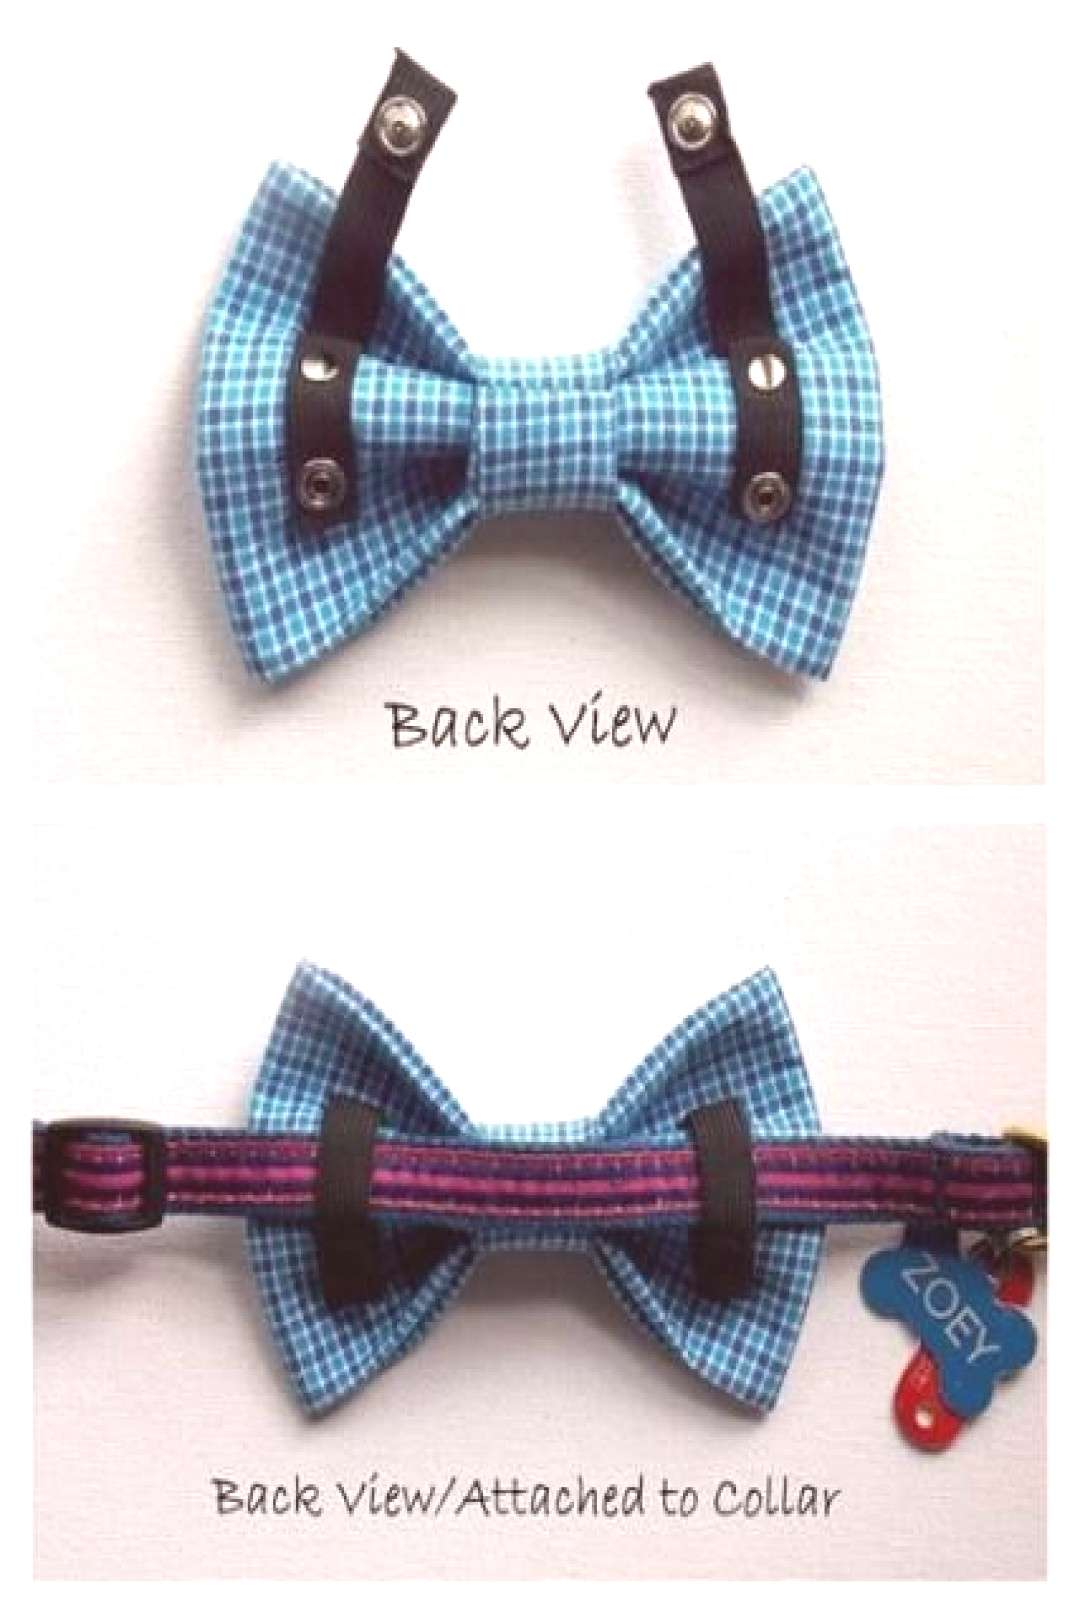 Dogs accessories diy ideas 27 ideas for 2019 Dogs accessories diy ideas 27 ideas for 2019